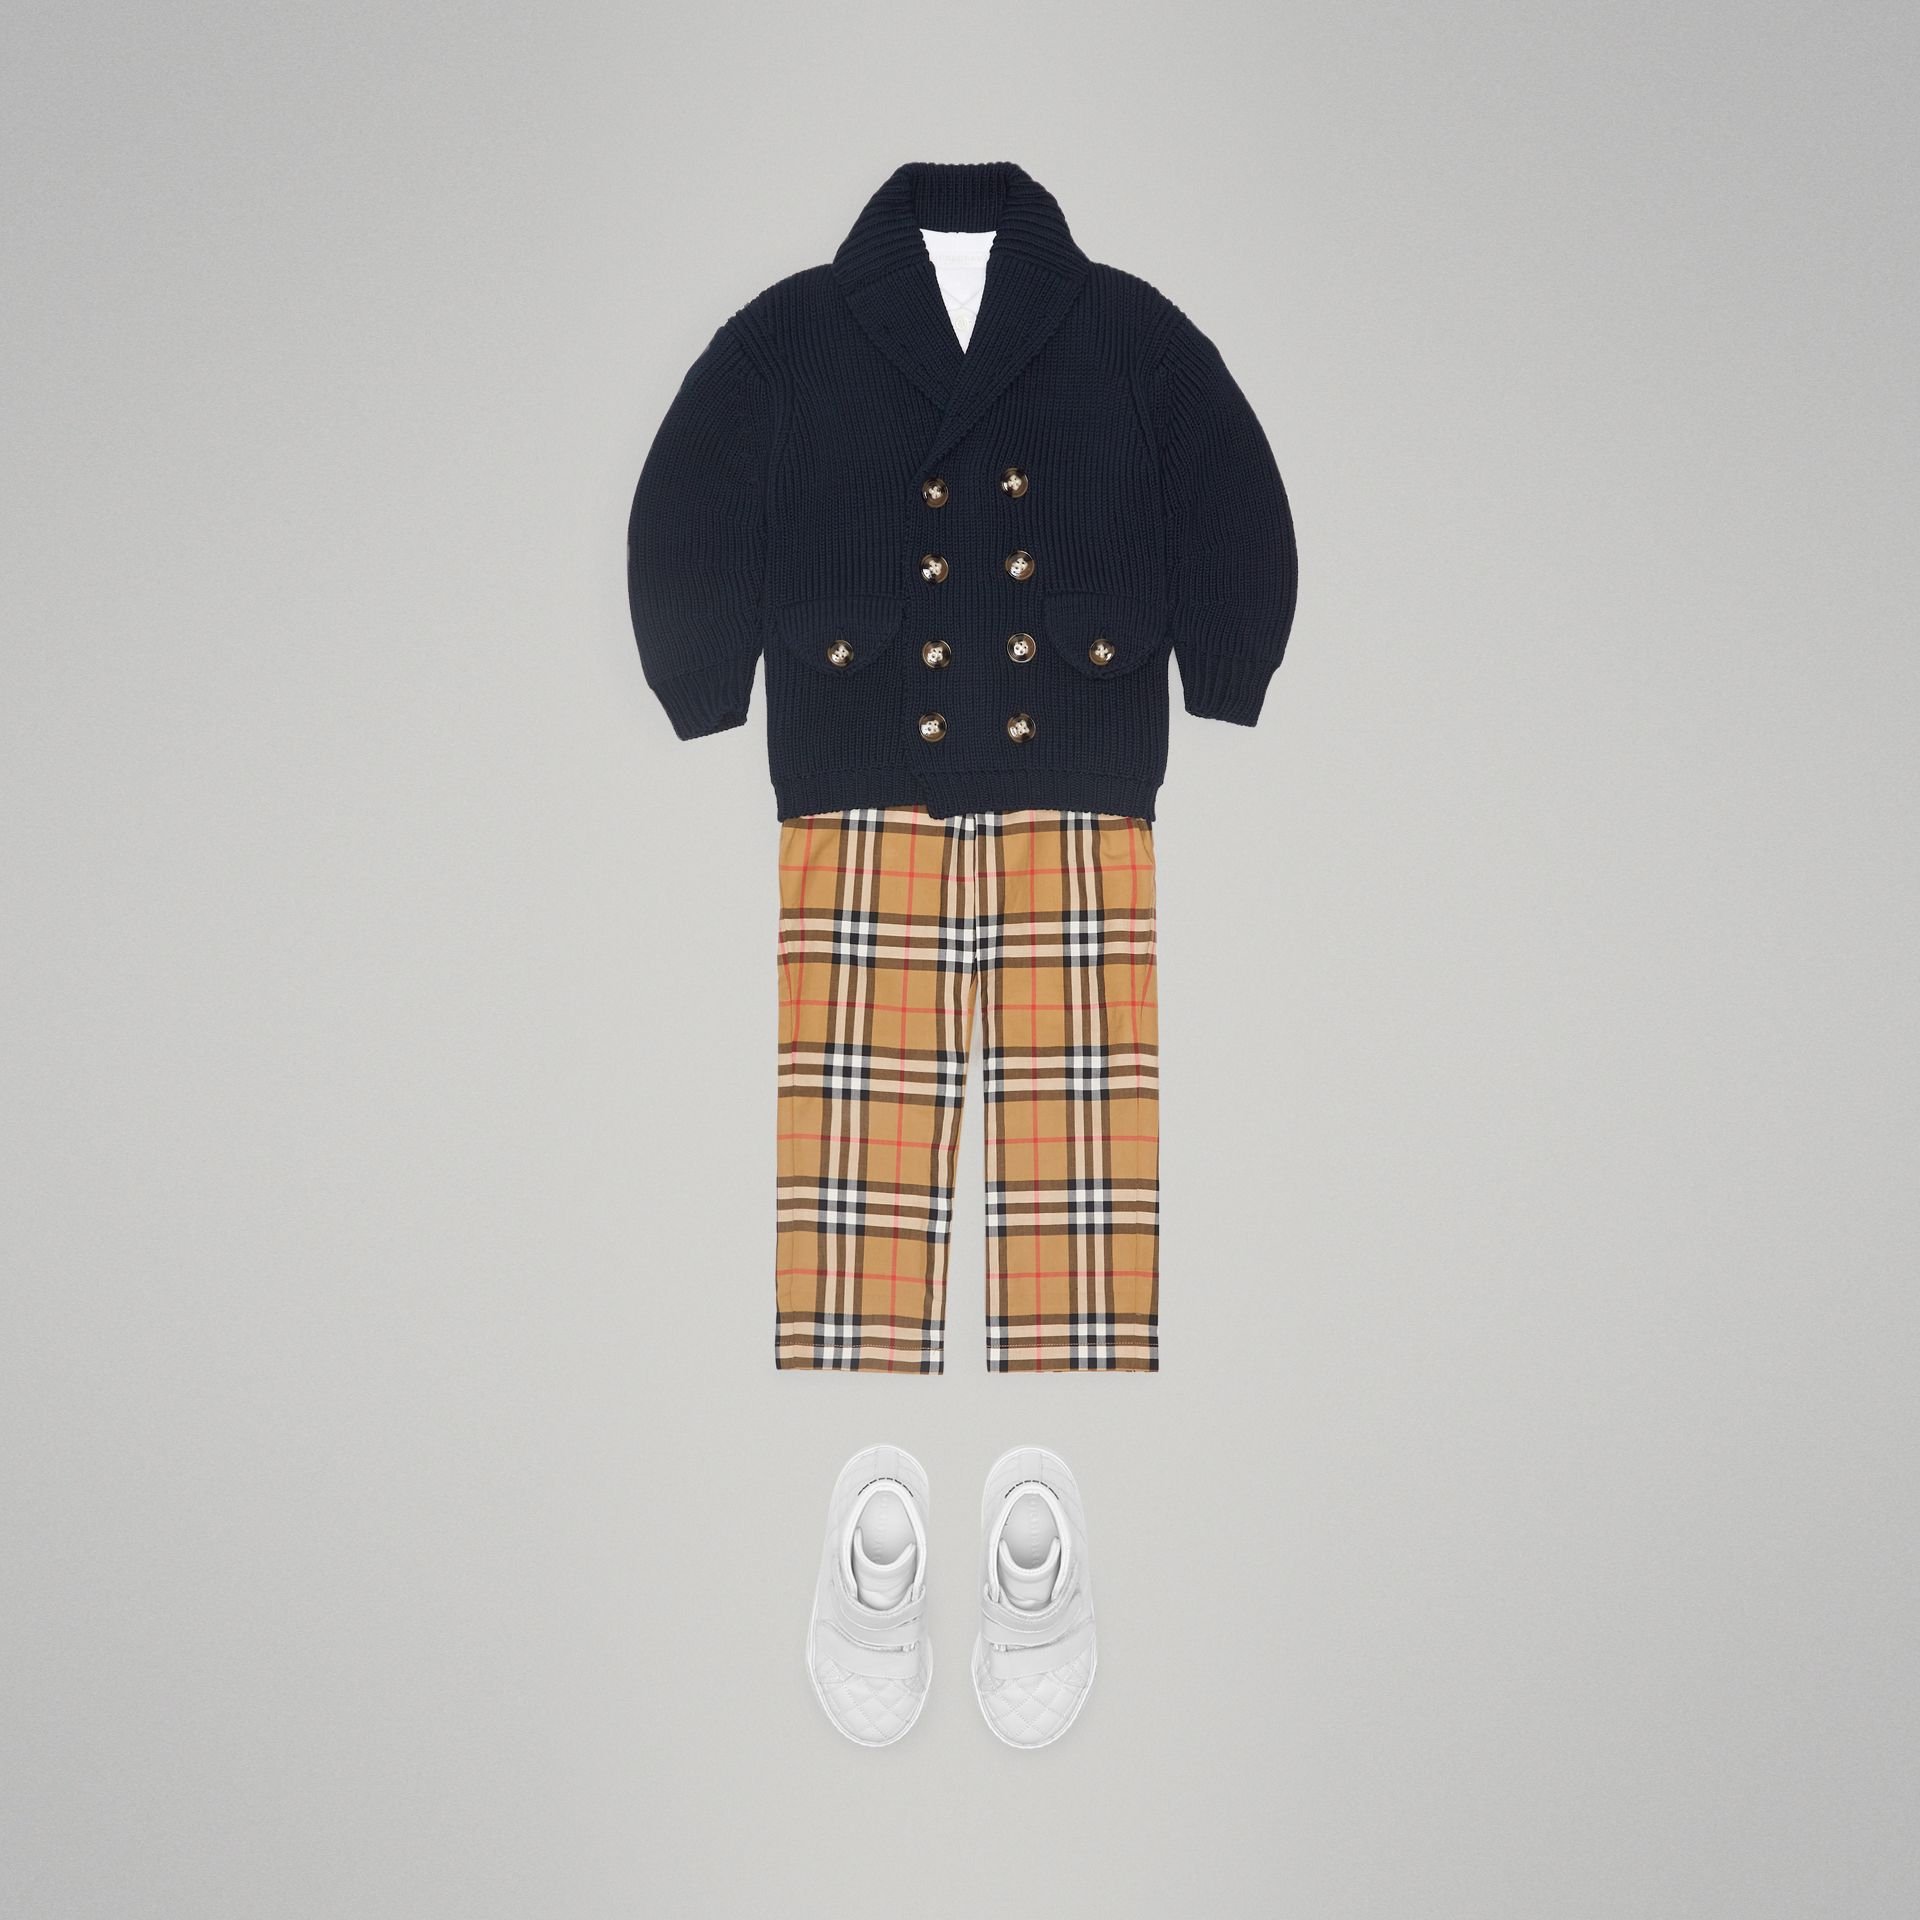 Cotton Knit Pea Coat Cardigan in Navy - Boy | Burberry - gallery image 2